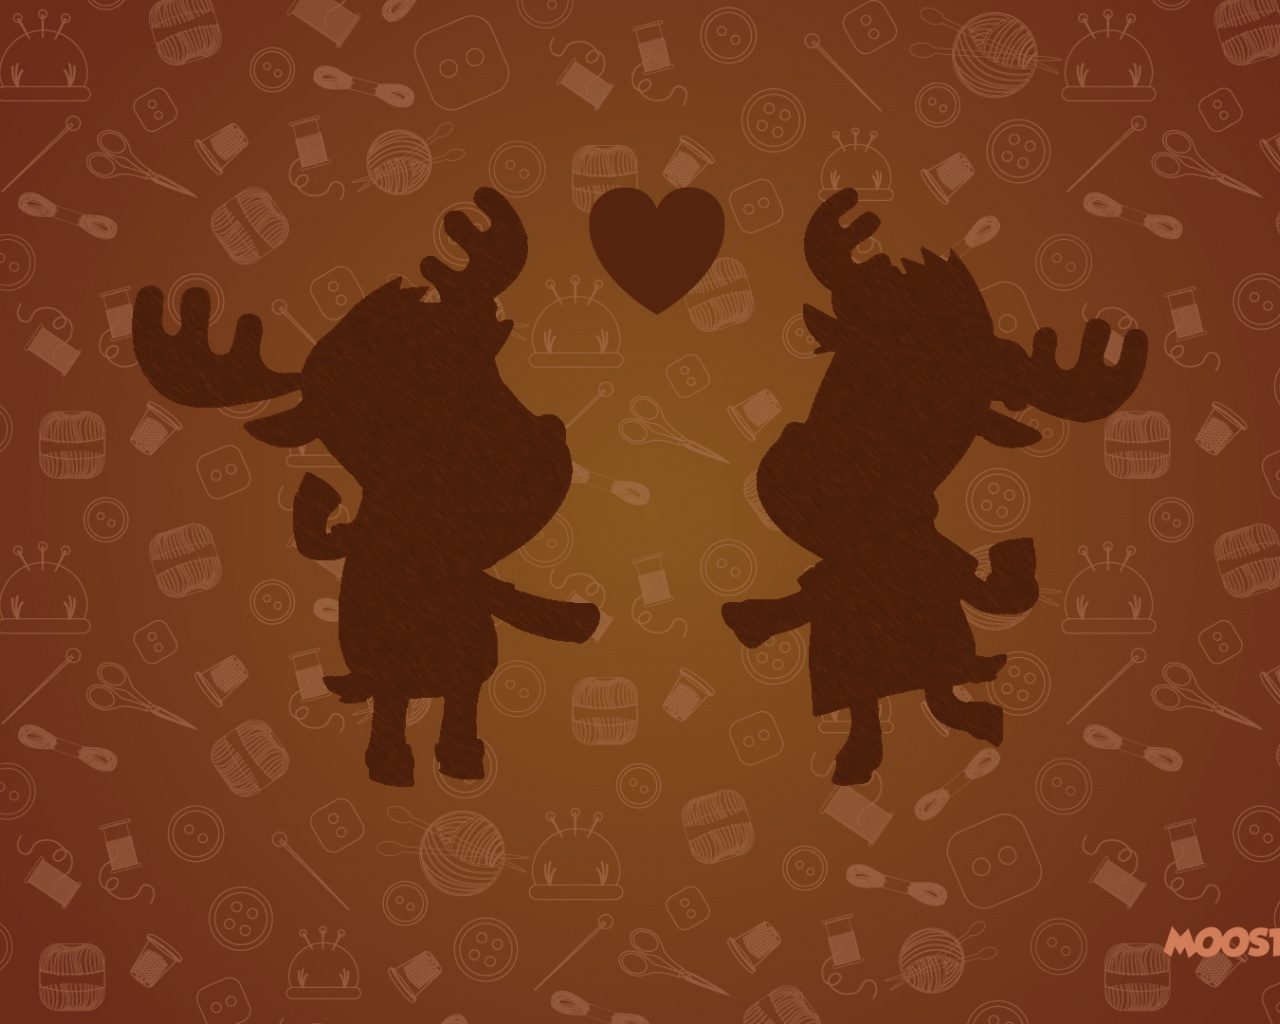 1280x1024 Moose Loving Couple